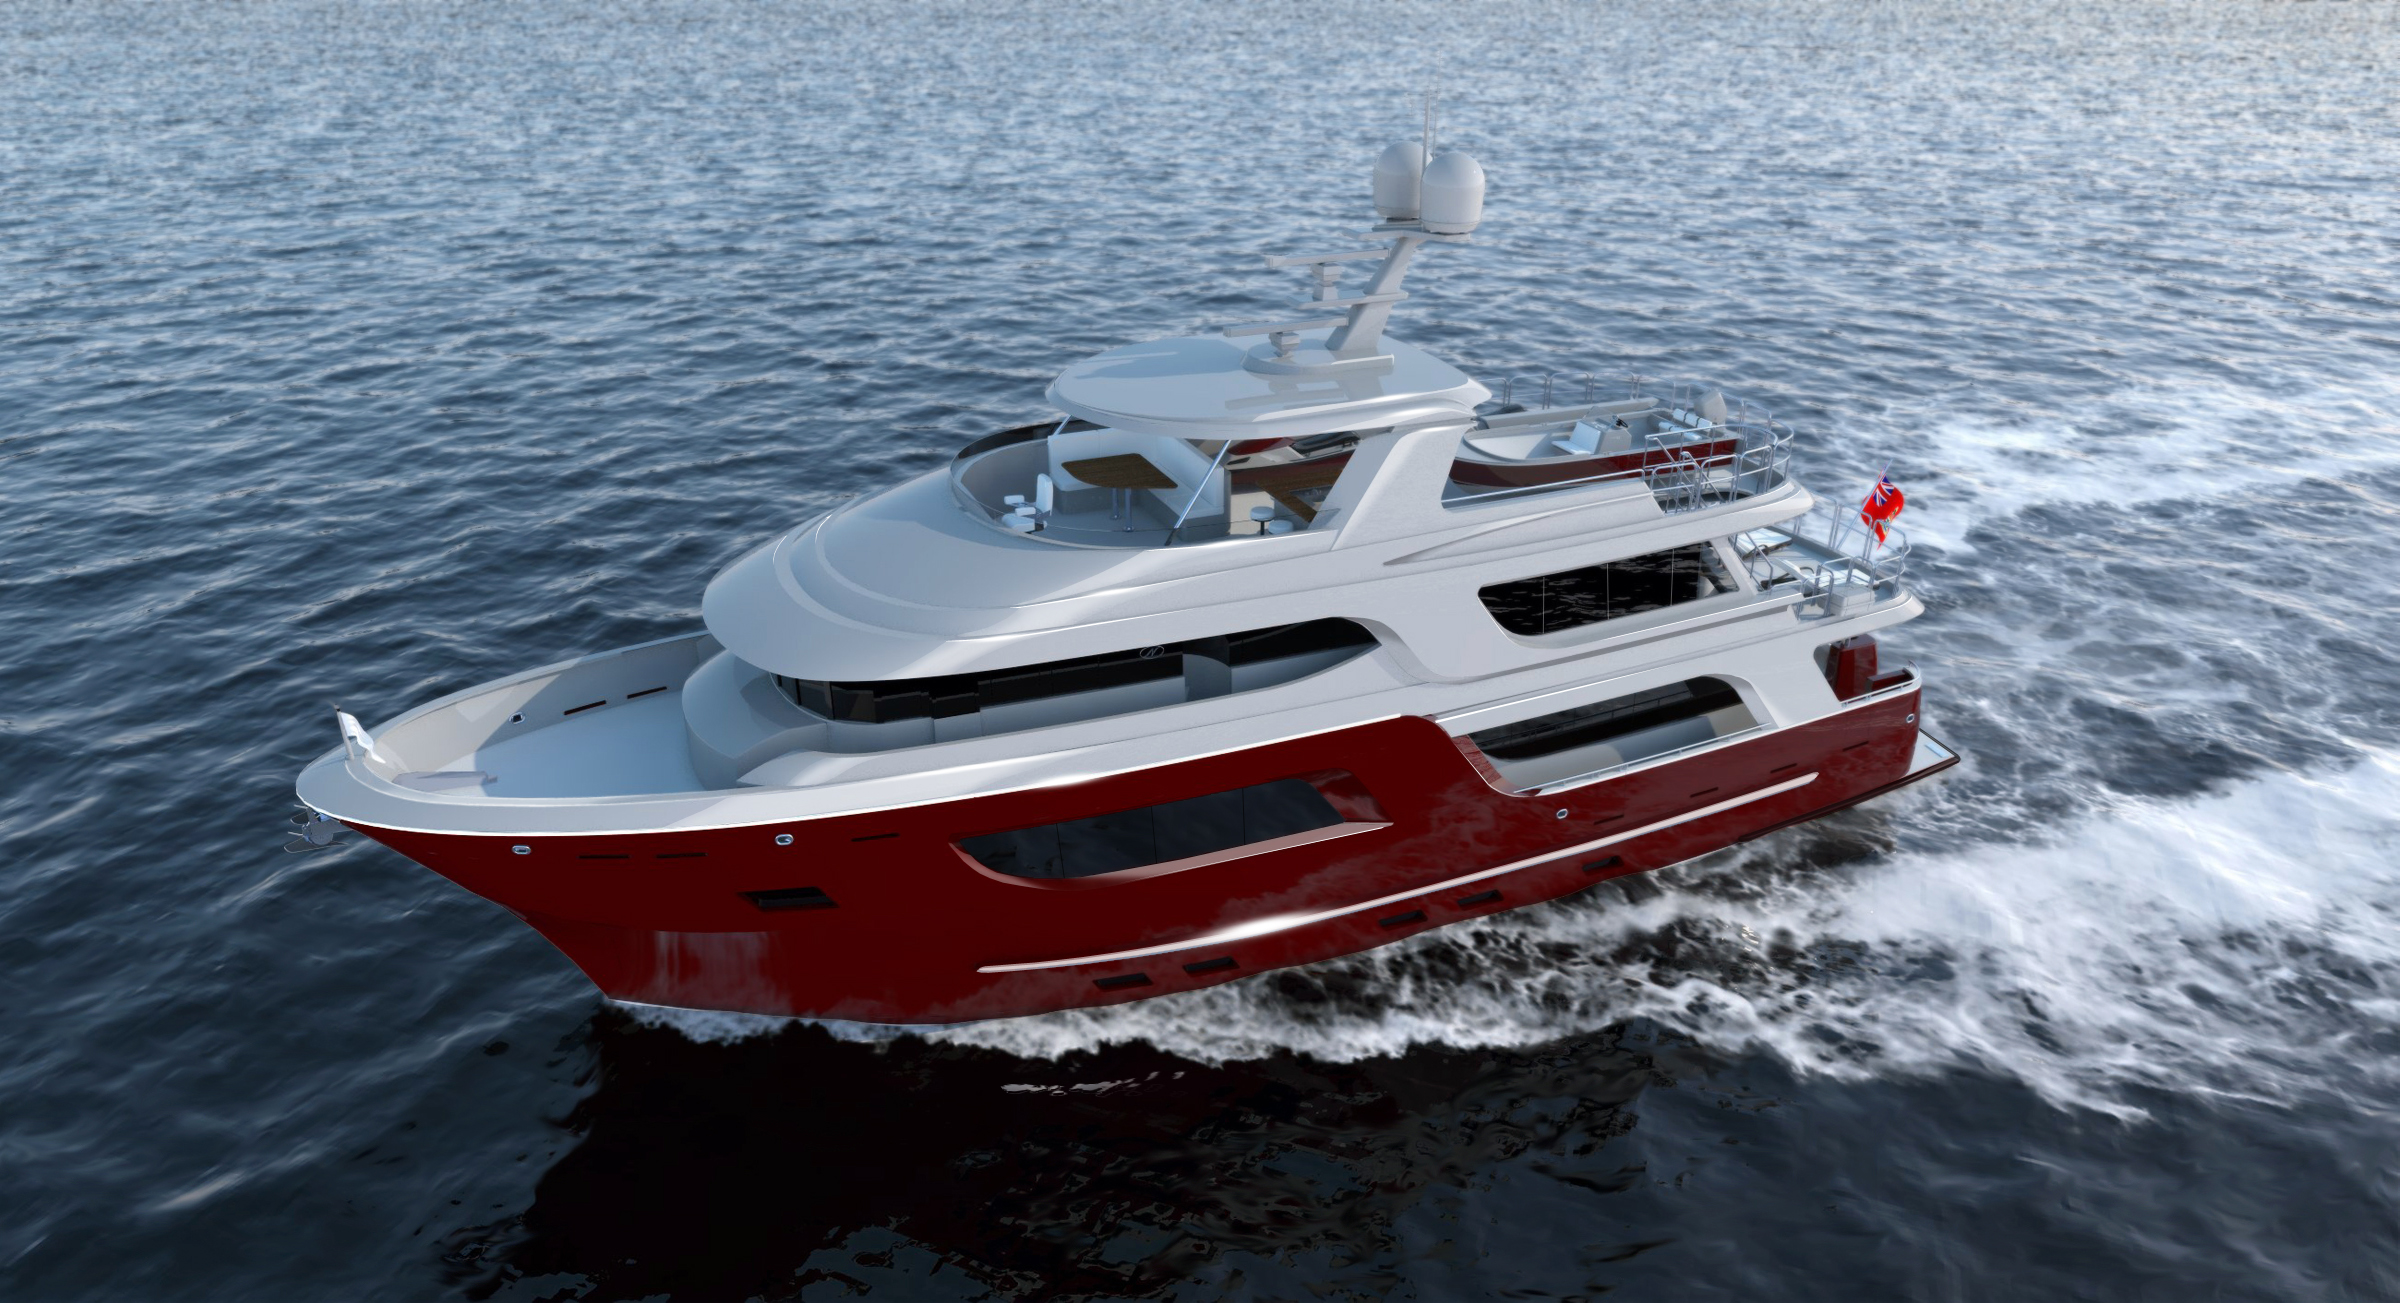 Blood Baron Expedition Yacht Yacht Charter Superyacht News